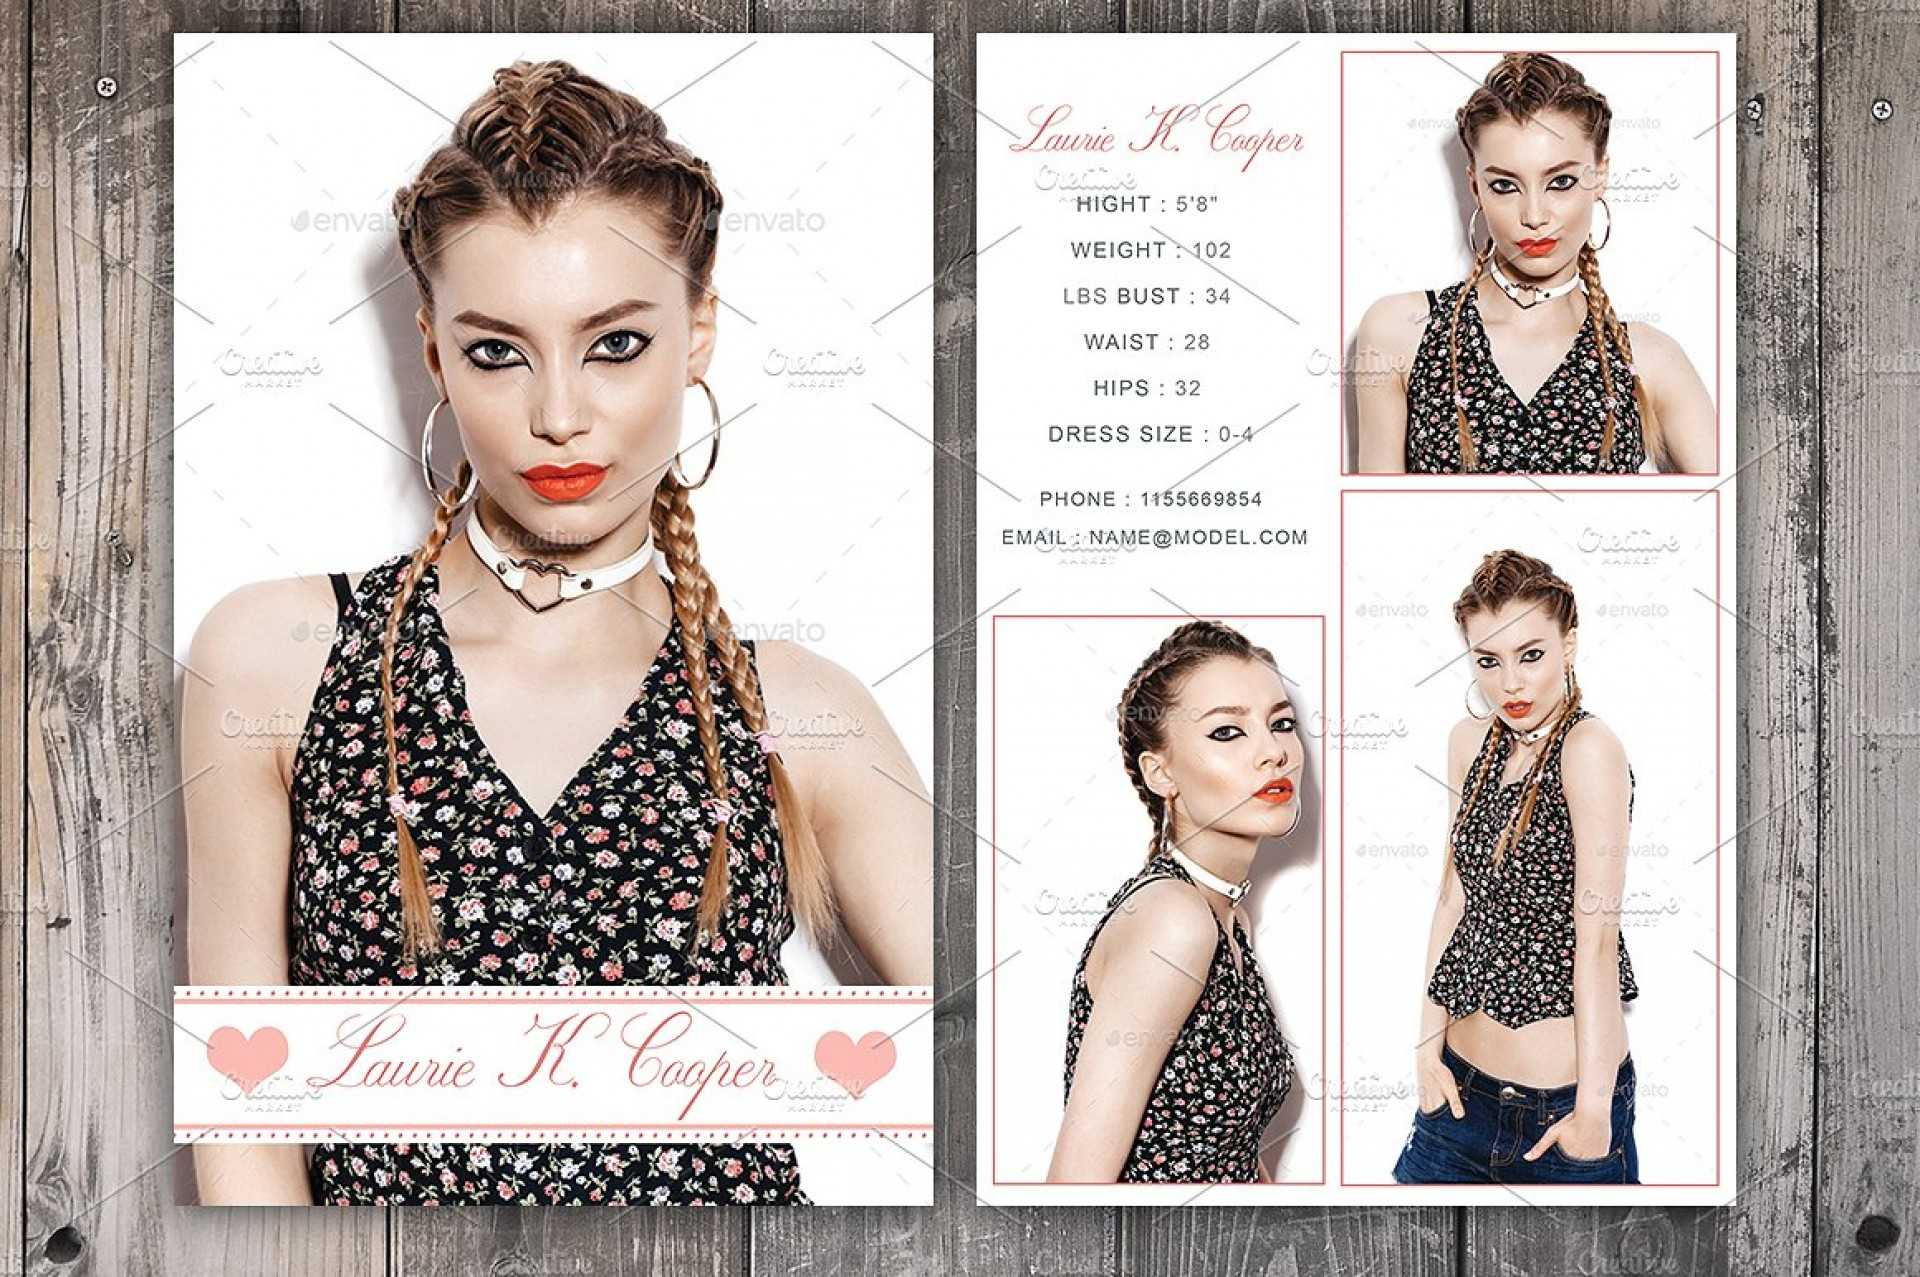 Free Model Comp Card Templates - C Punkt With Comp Card Template Download